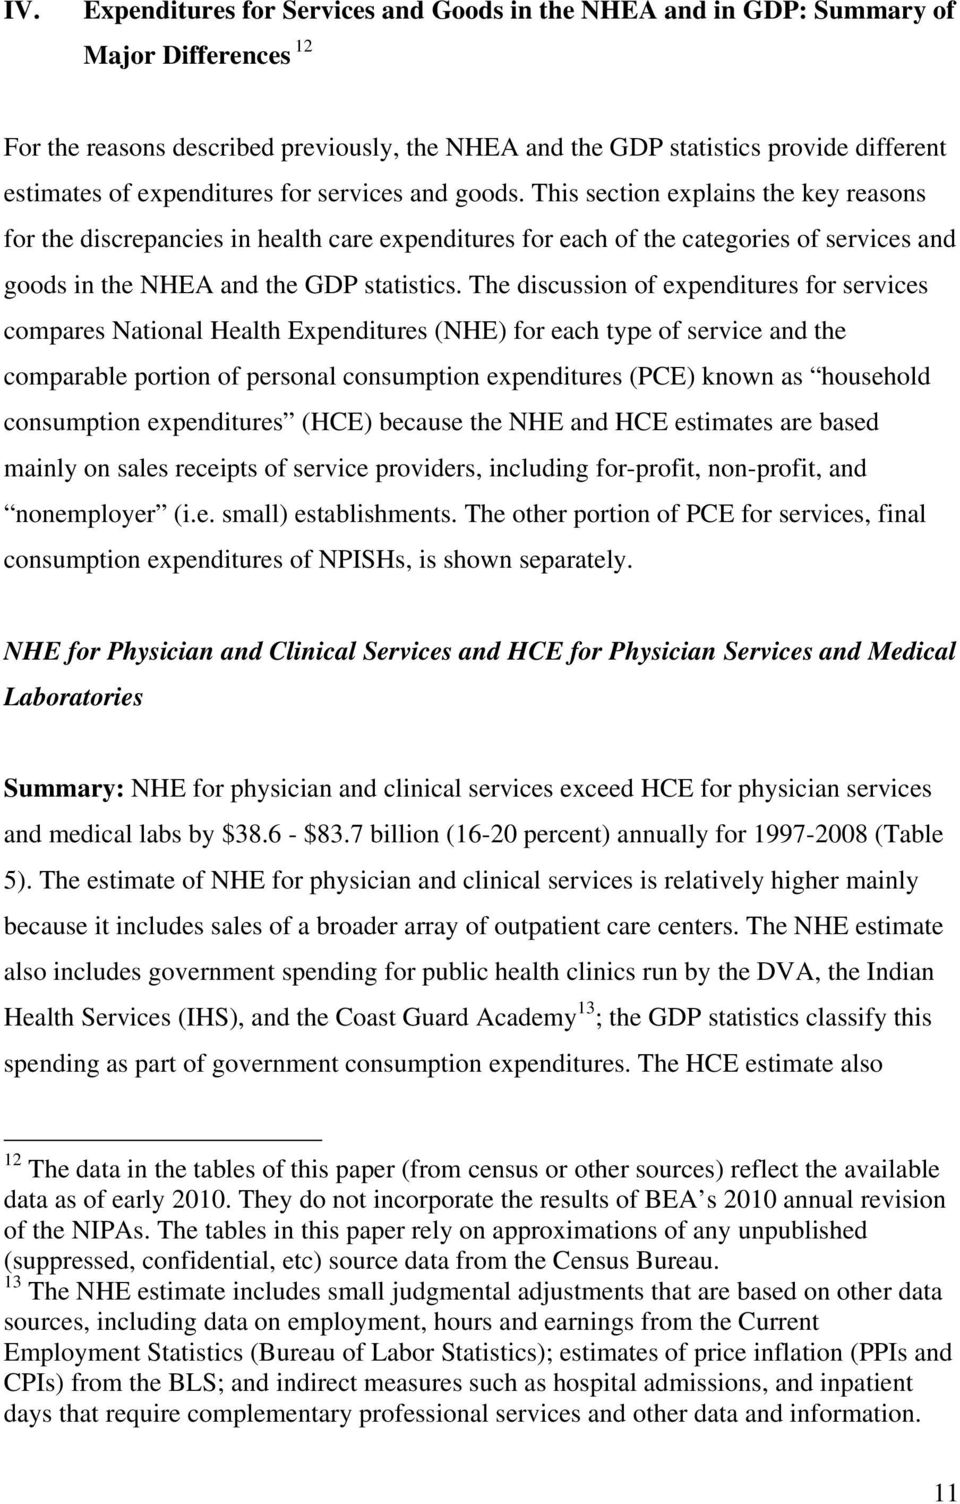 This section explains the key reasons for the discrepancies in health care expenditures for each of the categories of services and goods in the NHEA and the GDP statistics.